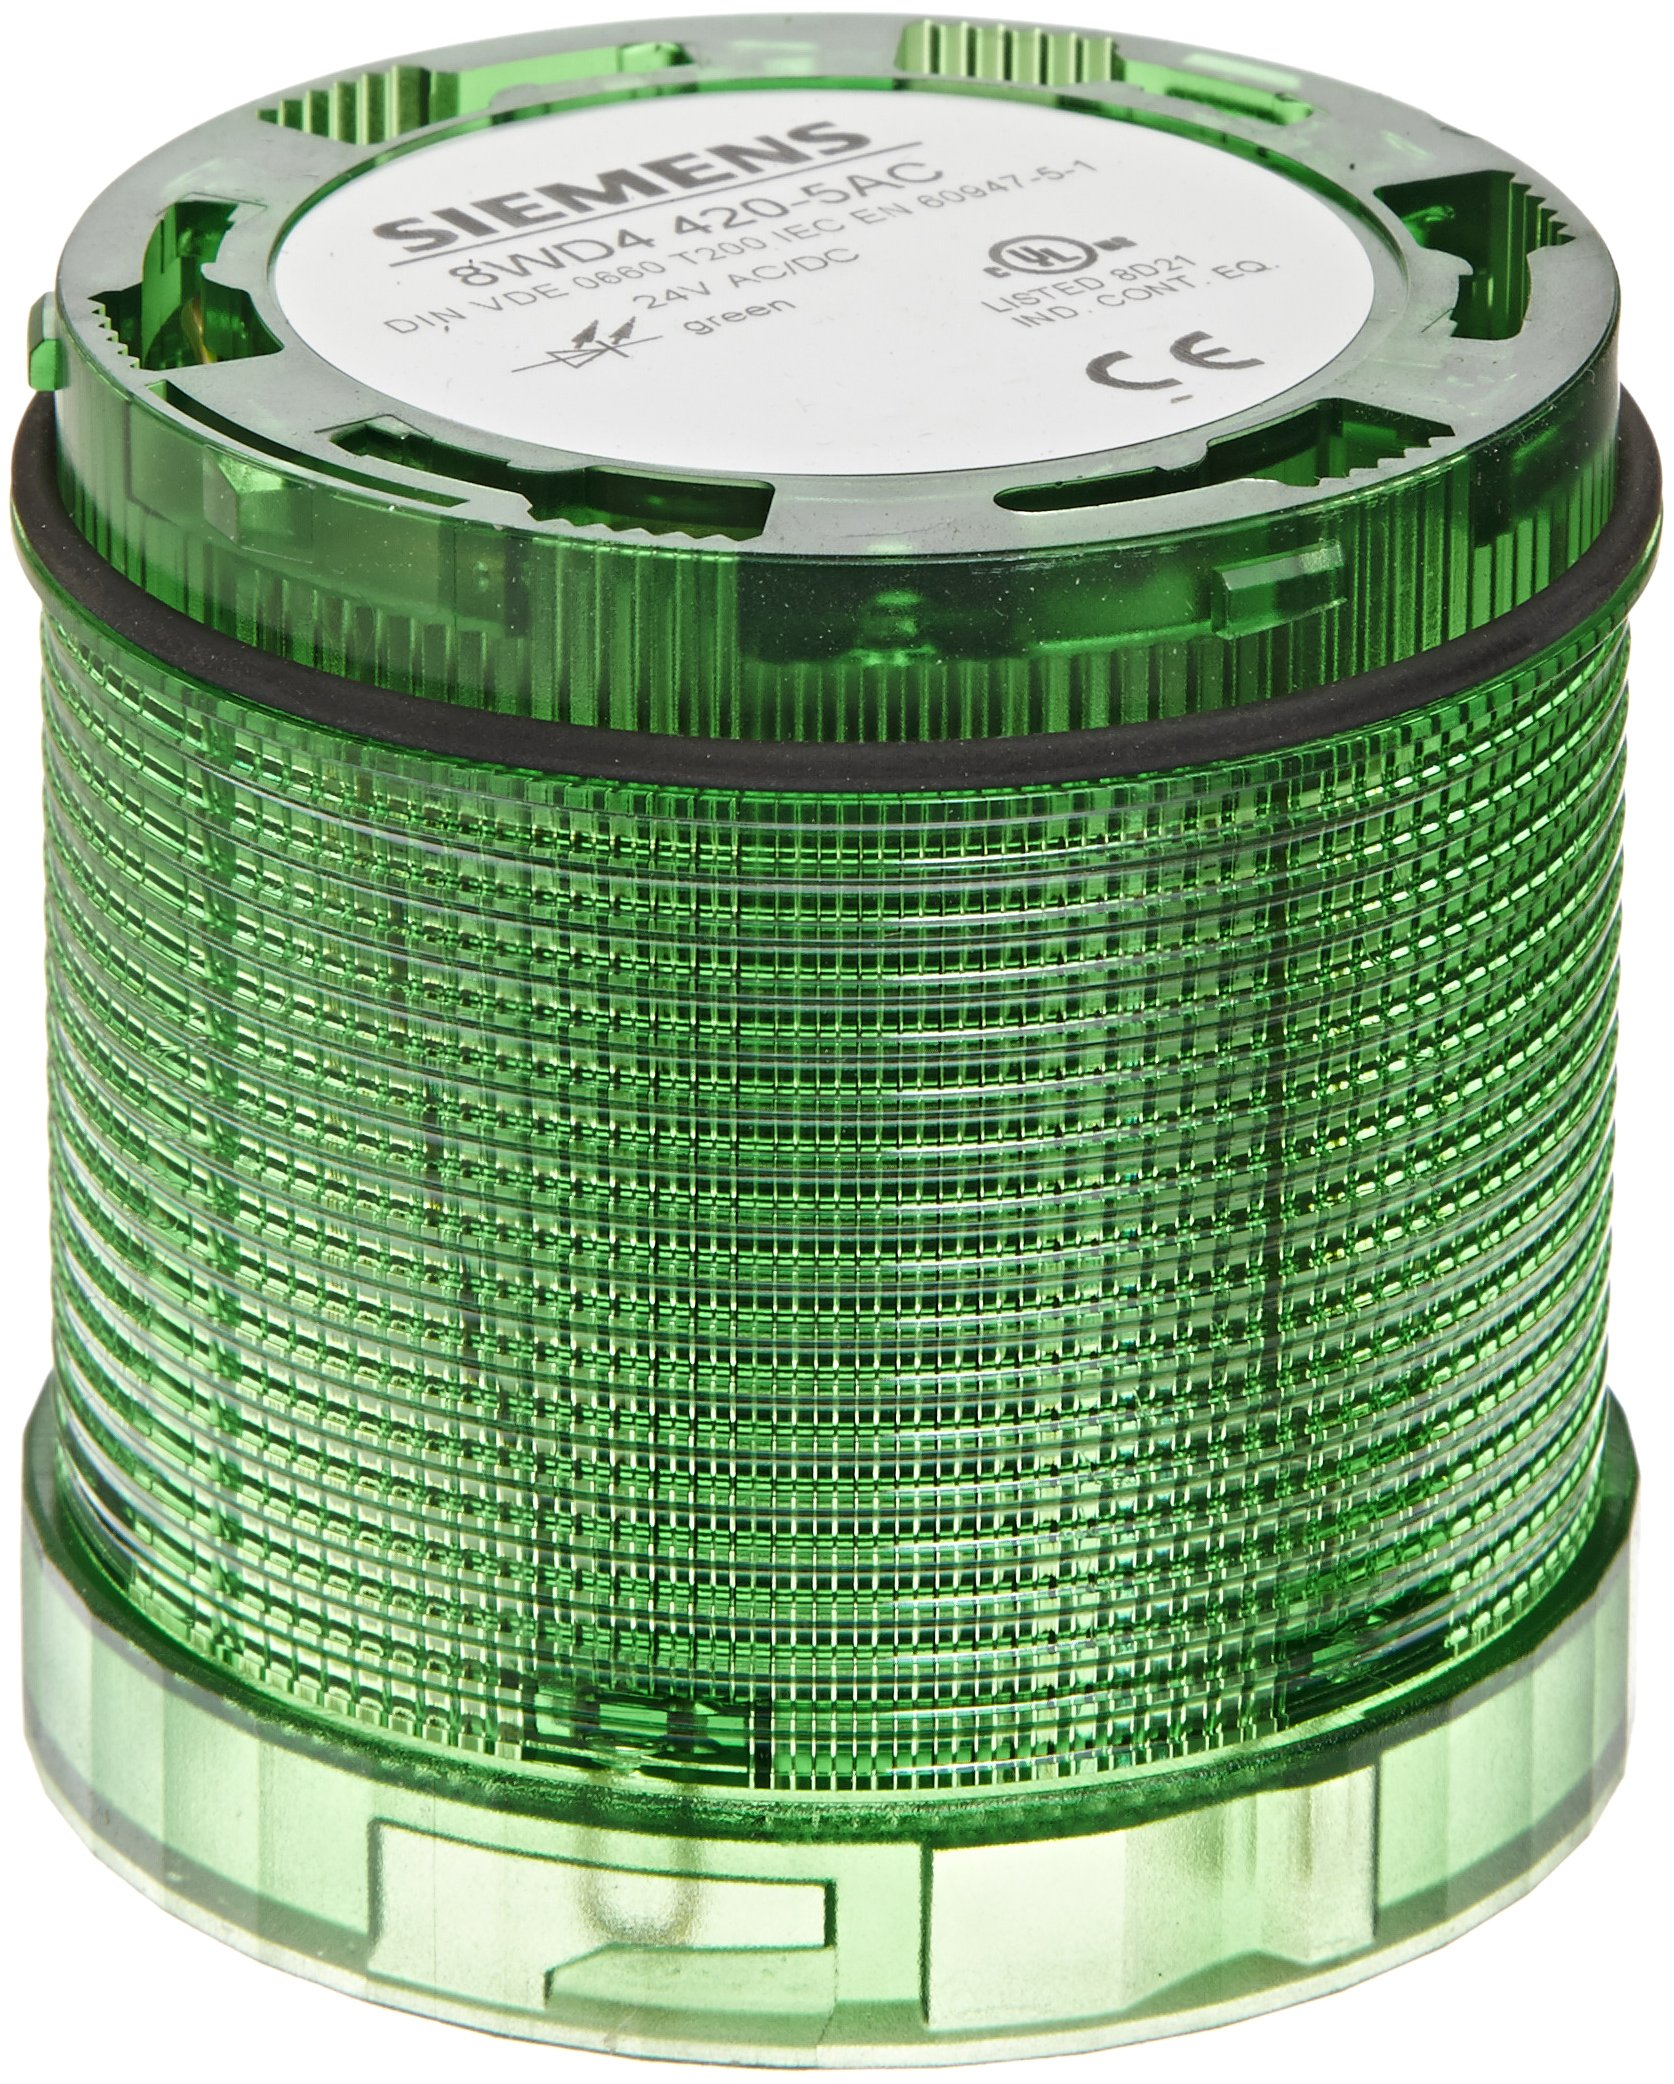 Siemens 8WD44 20-5AC Sirius Signal Column, Thermoplastic Enclosure, IP65 Protection, 70mm Diameter, Steady Light LED Element, Green, UC 24V Voltage